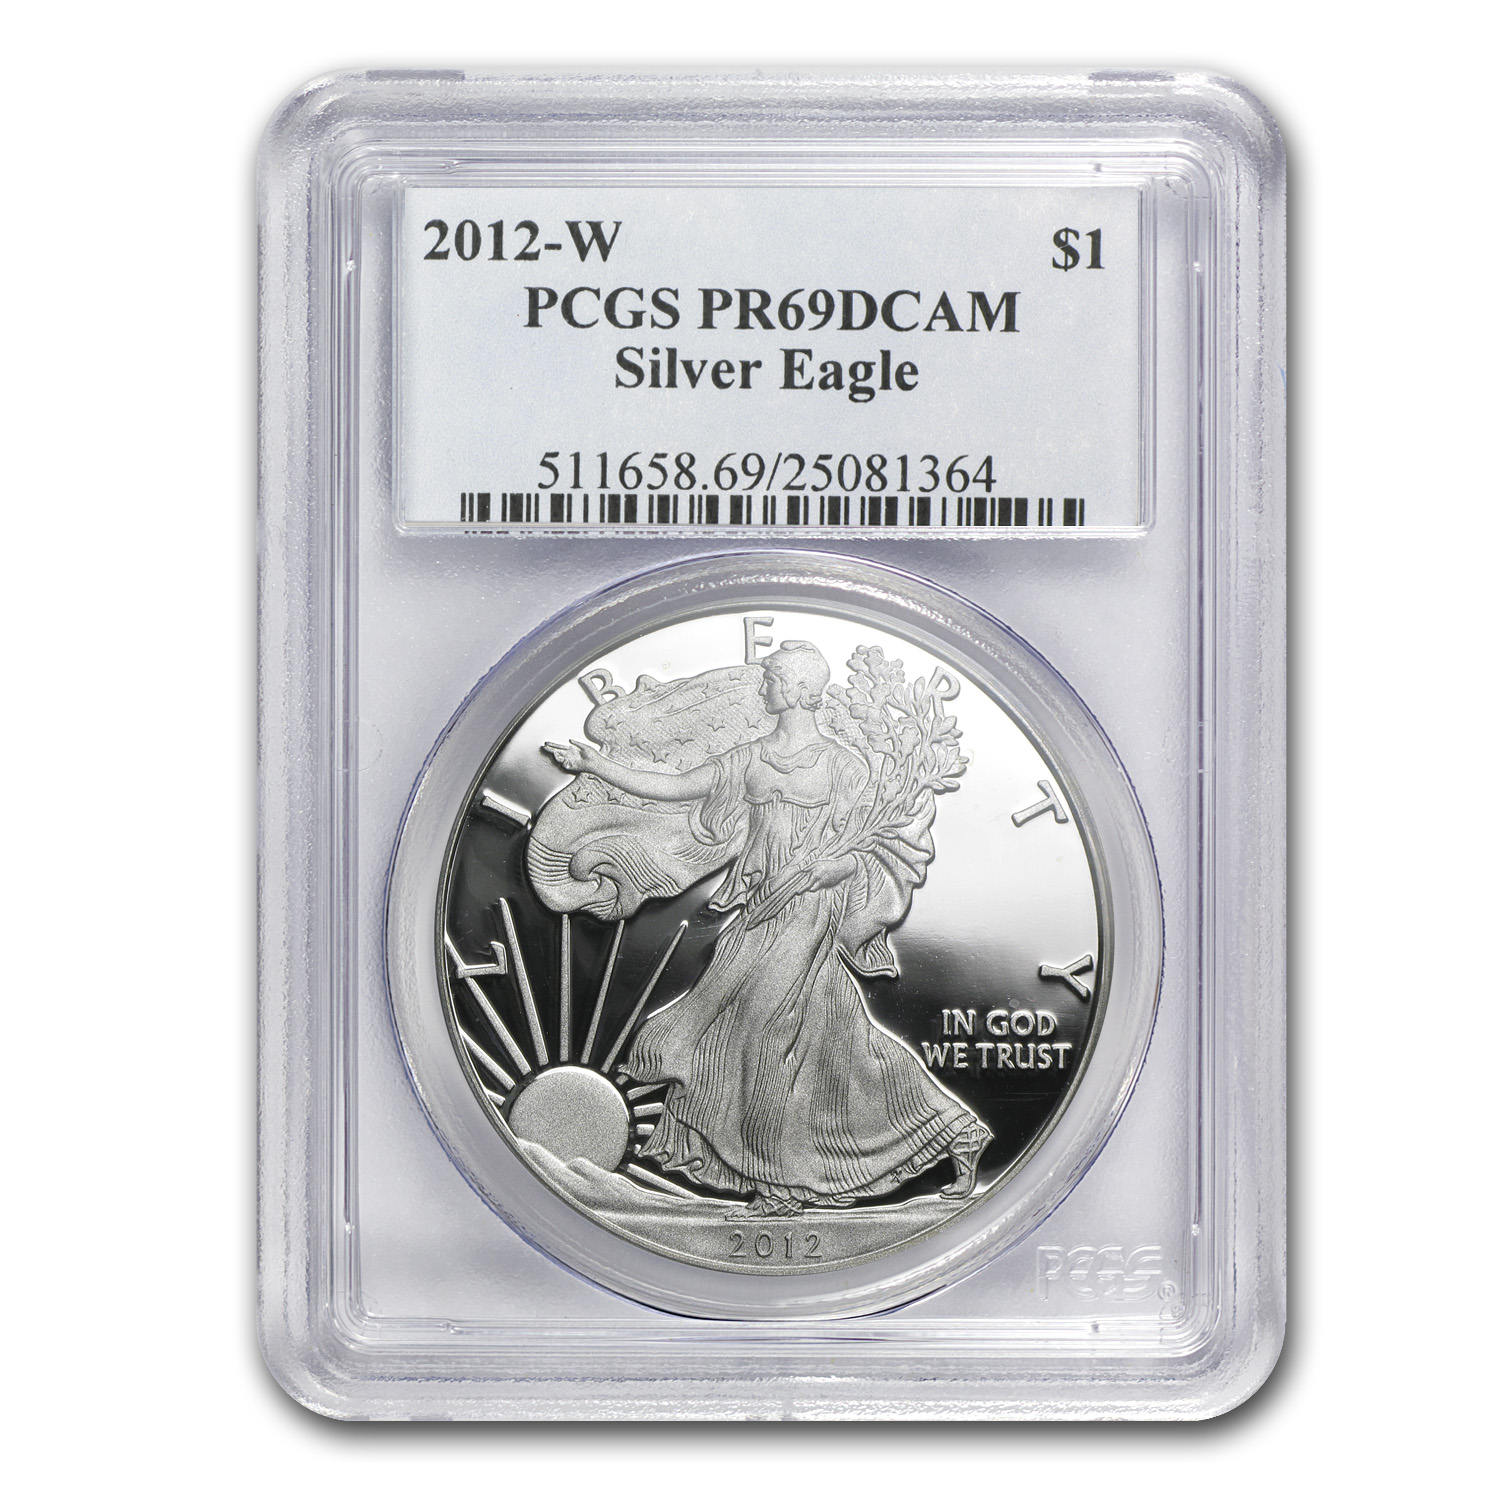 2012-W Proof Silver American Eagle PR-69 PCGS